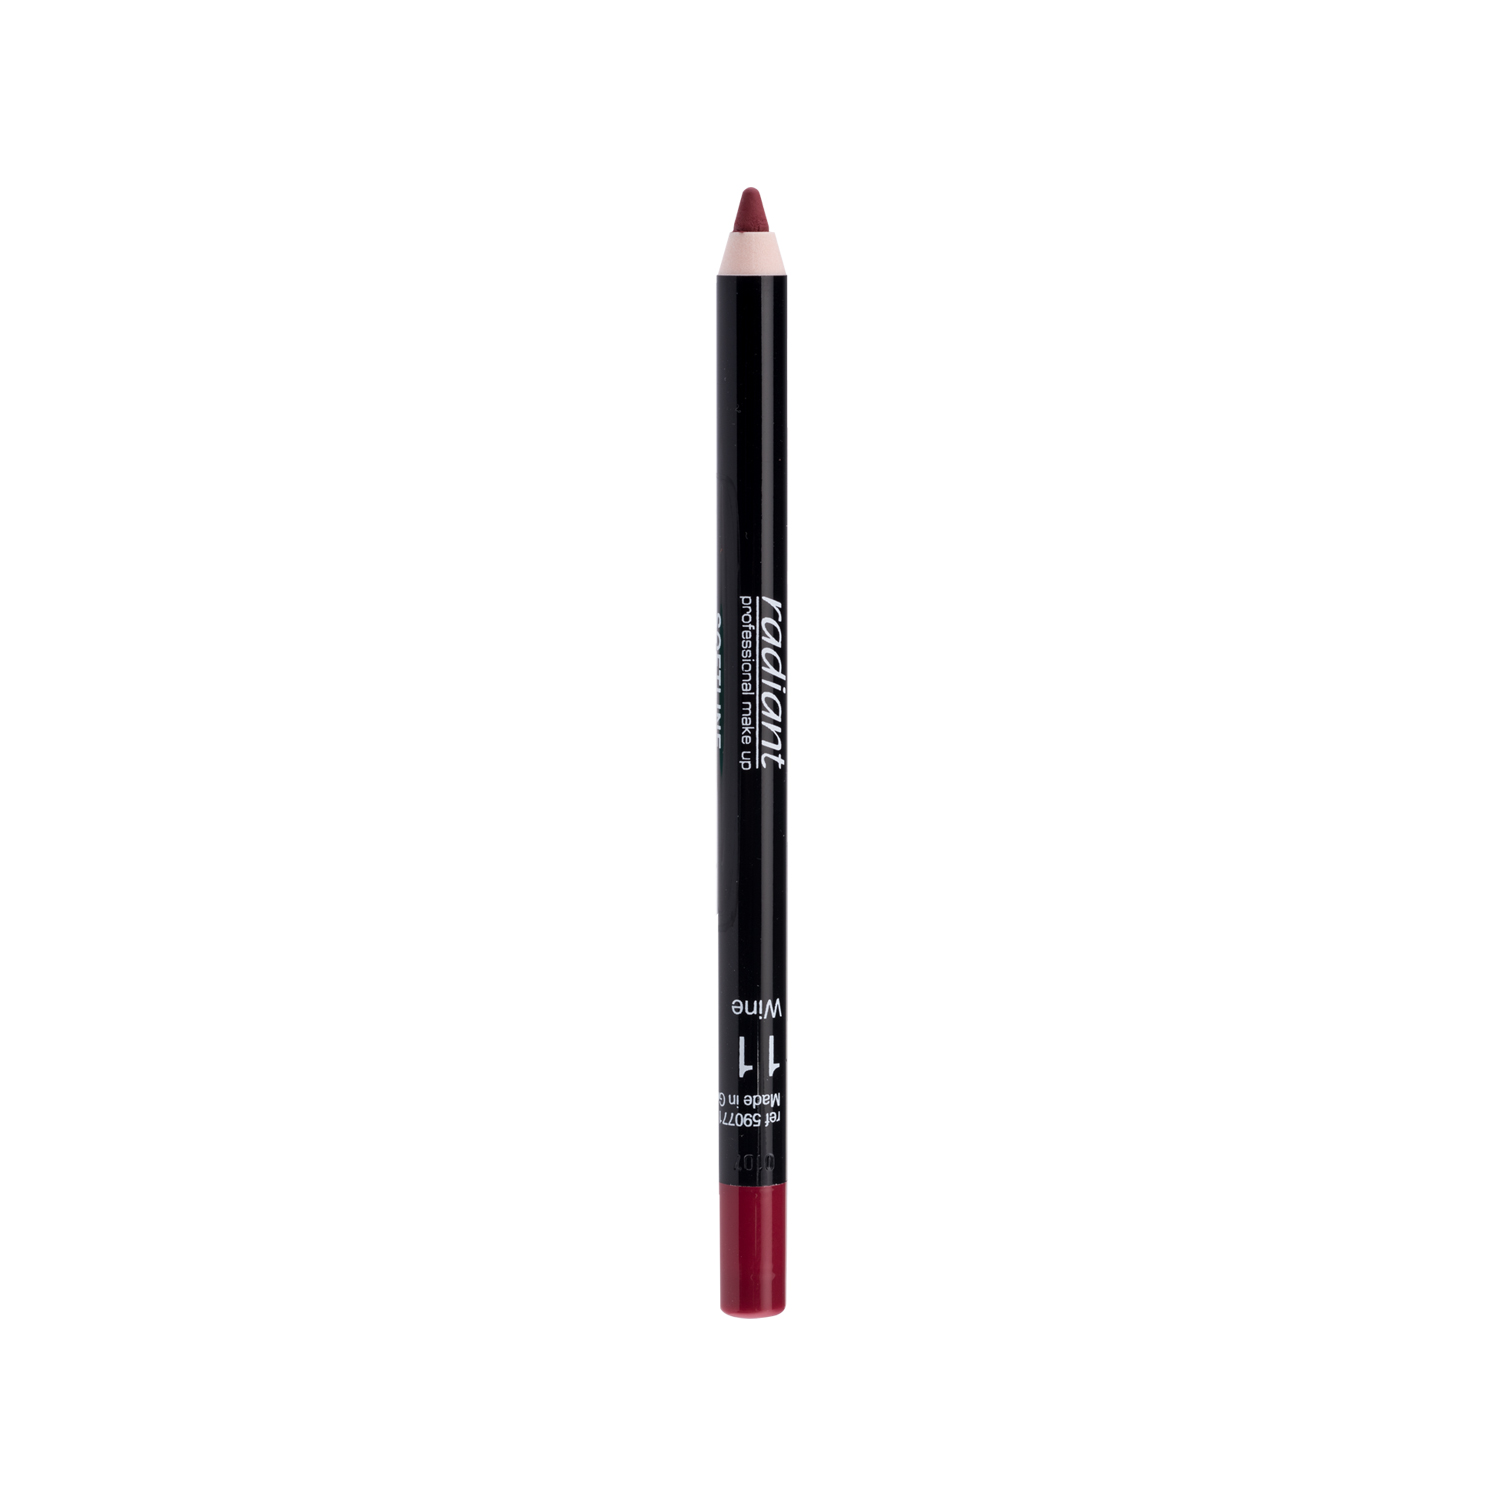 SOFTLINE WATERPROOF LIP PENCIL (11 Wine)